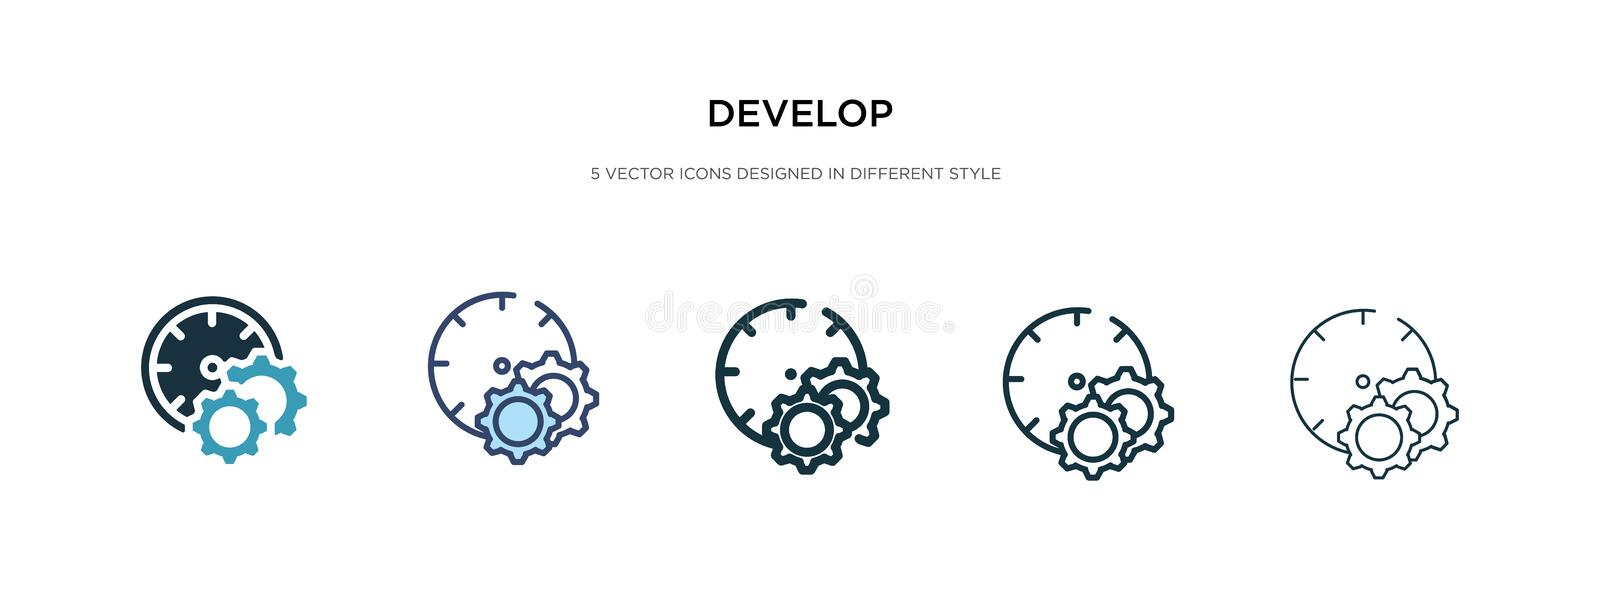 Develop icon in different style vector illustration. two colored and black develop vector icons designed in filled, outline, line vector illustration